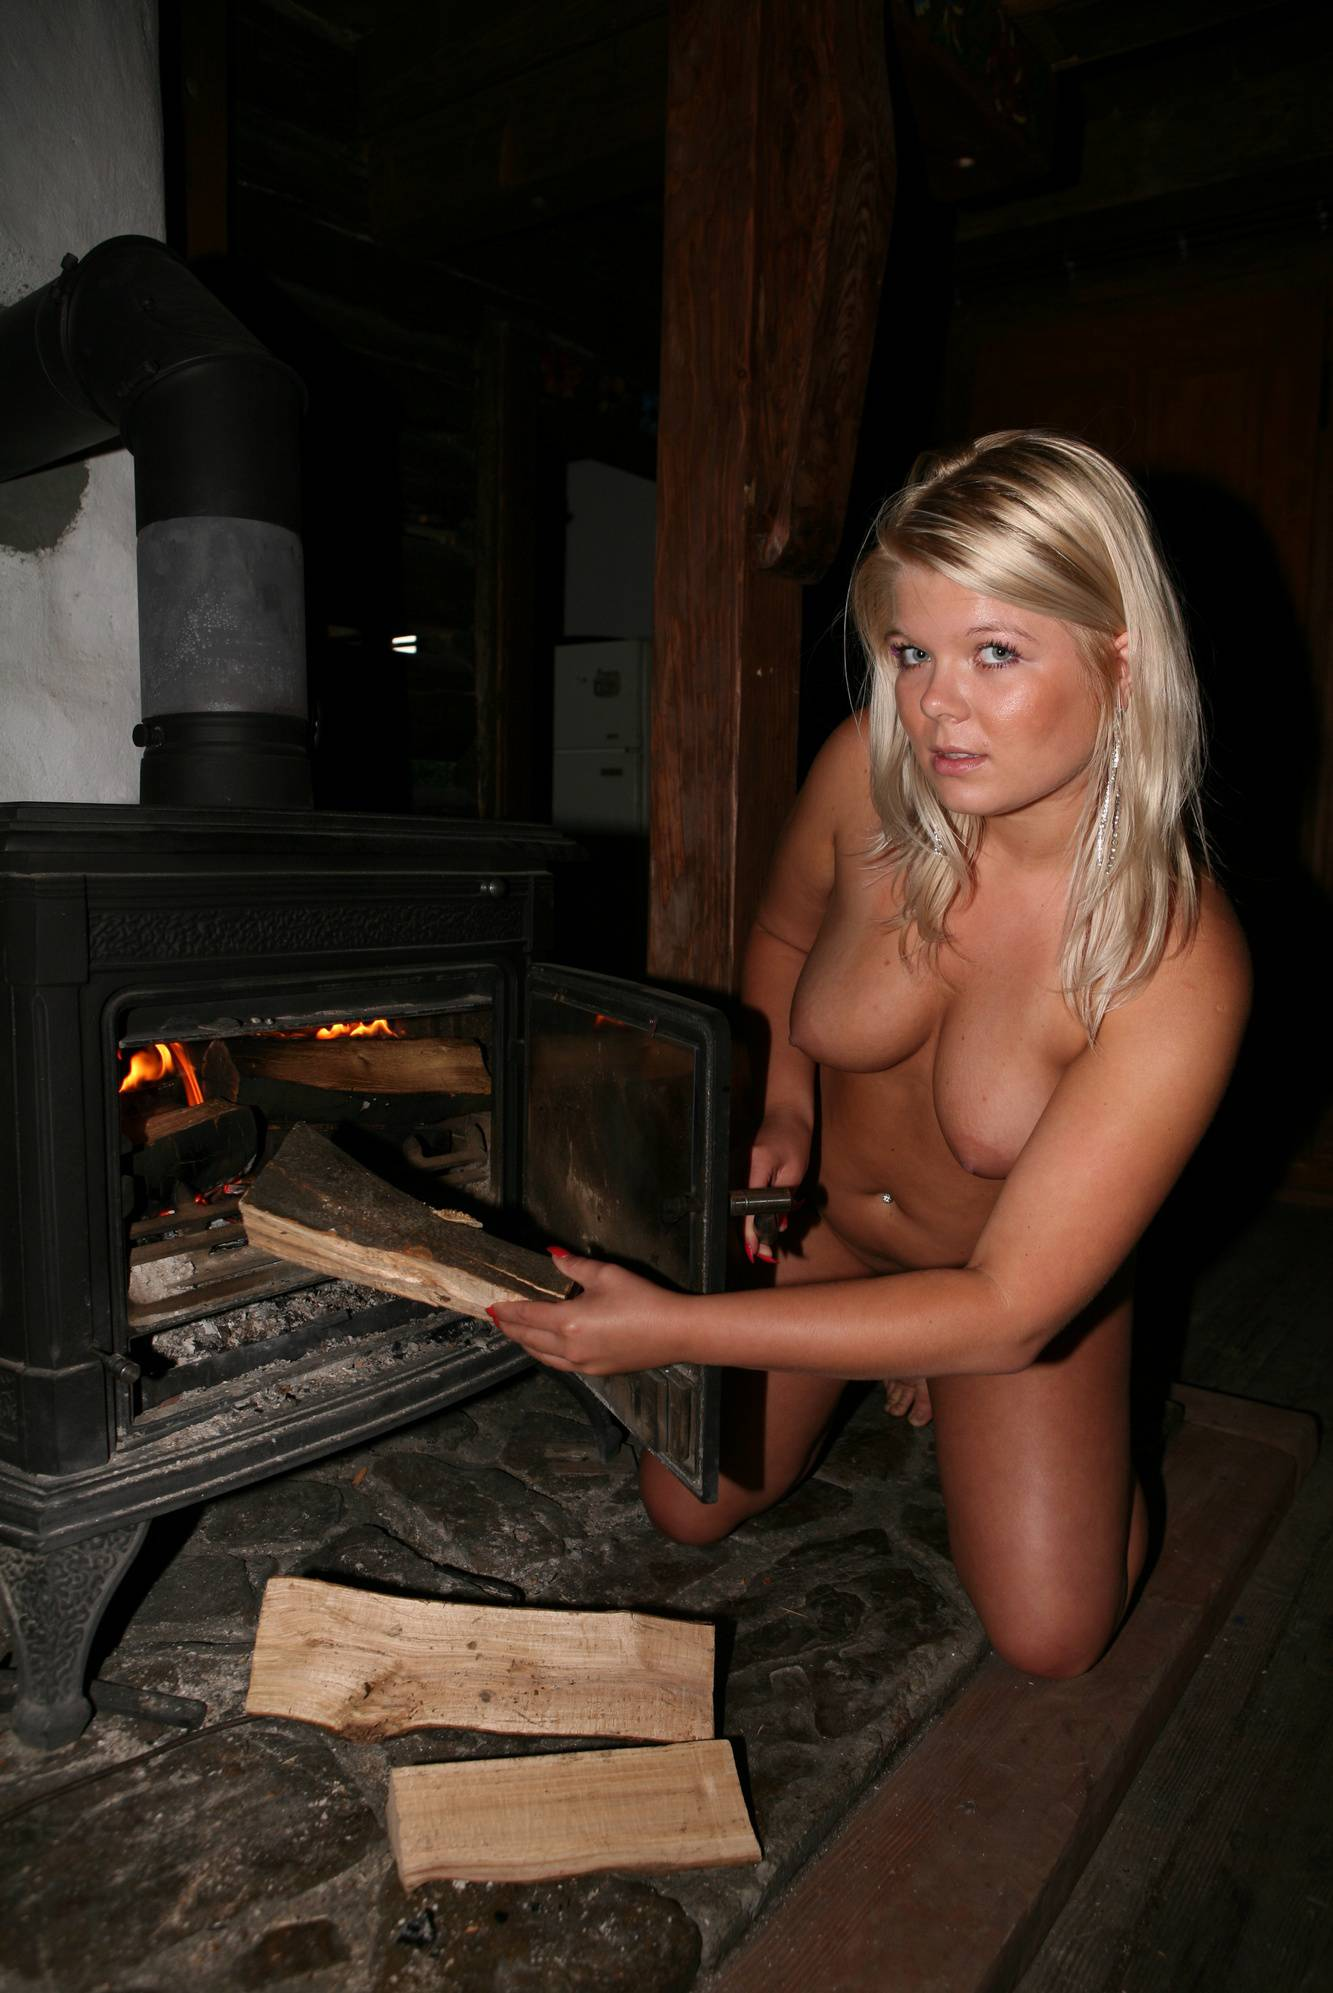 Nudist Pics Woody Cottage Relaxing - 1